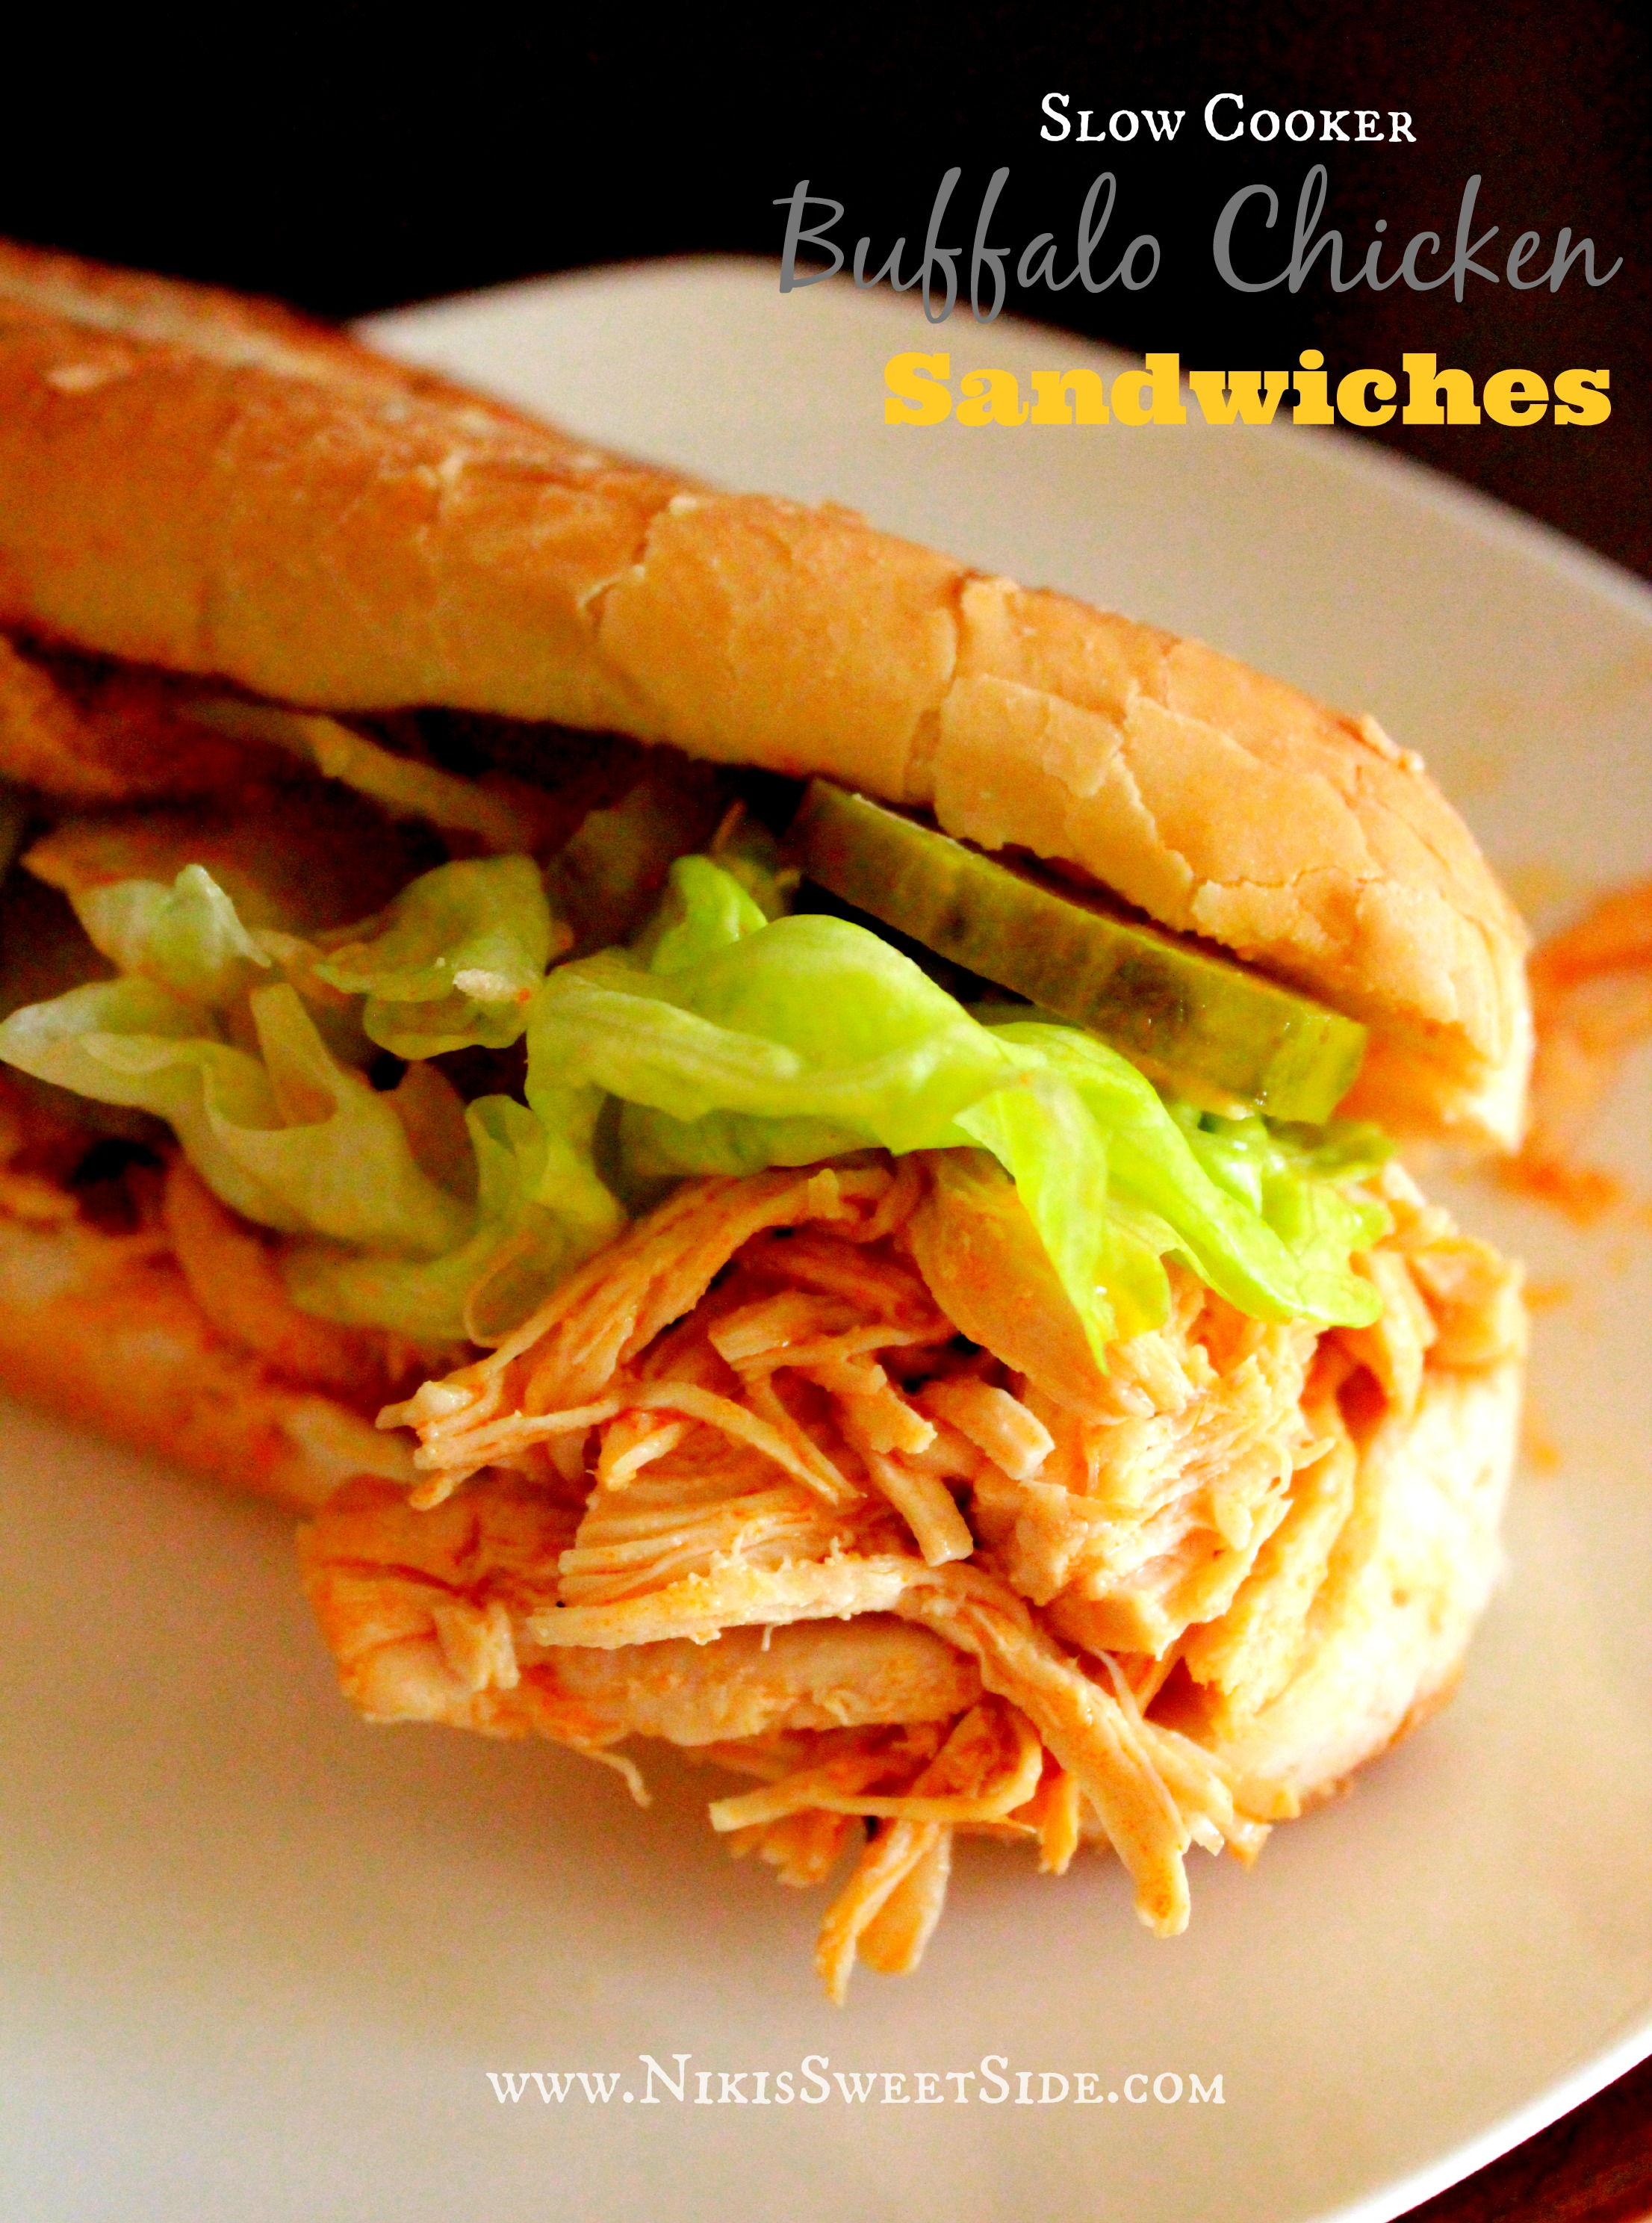 Slow Cooker Buffalo Chicken Sandwiches | Niki's Sweet Side